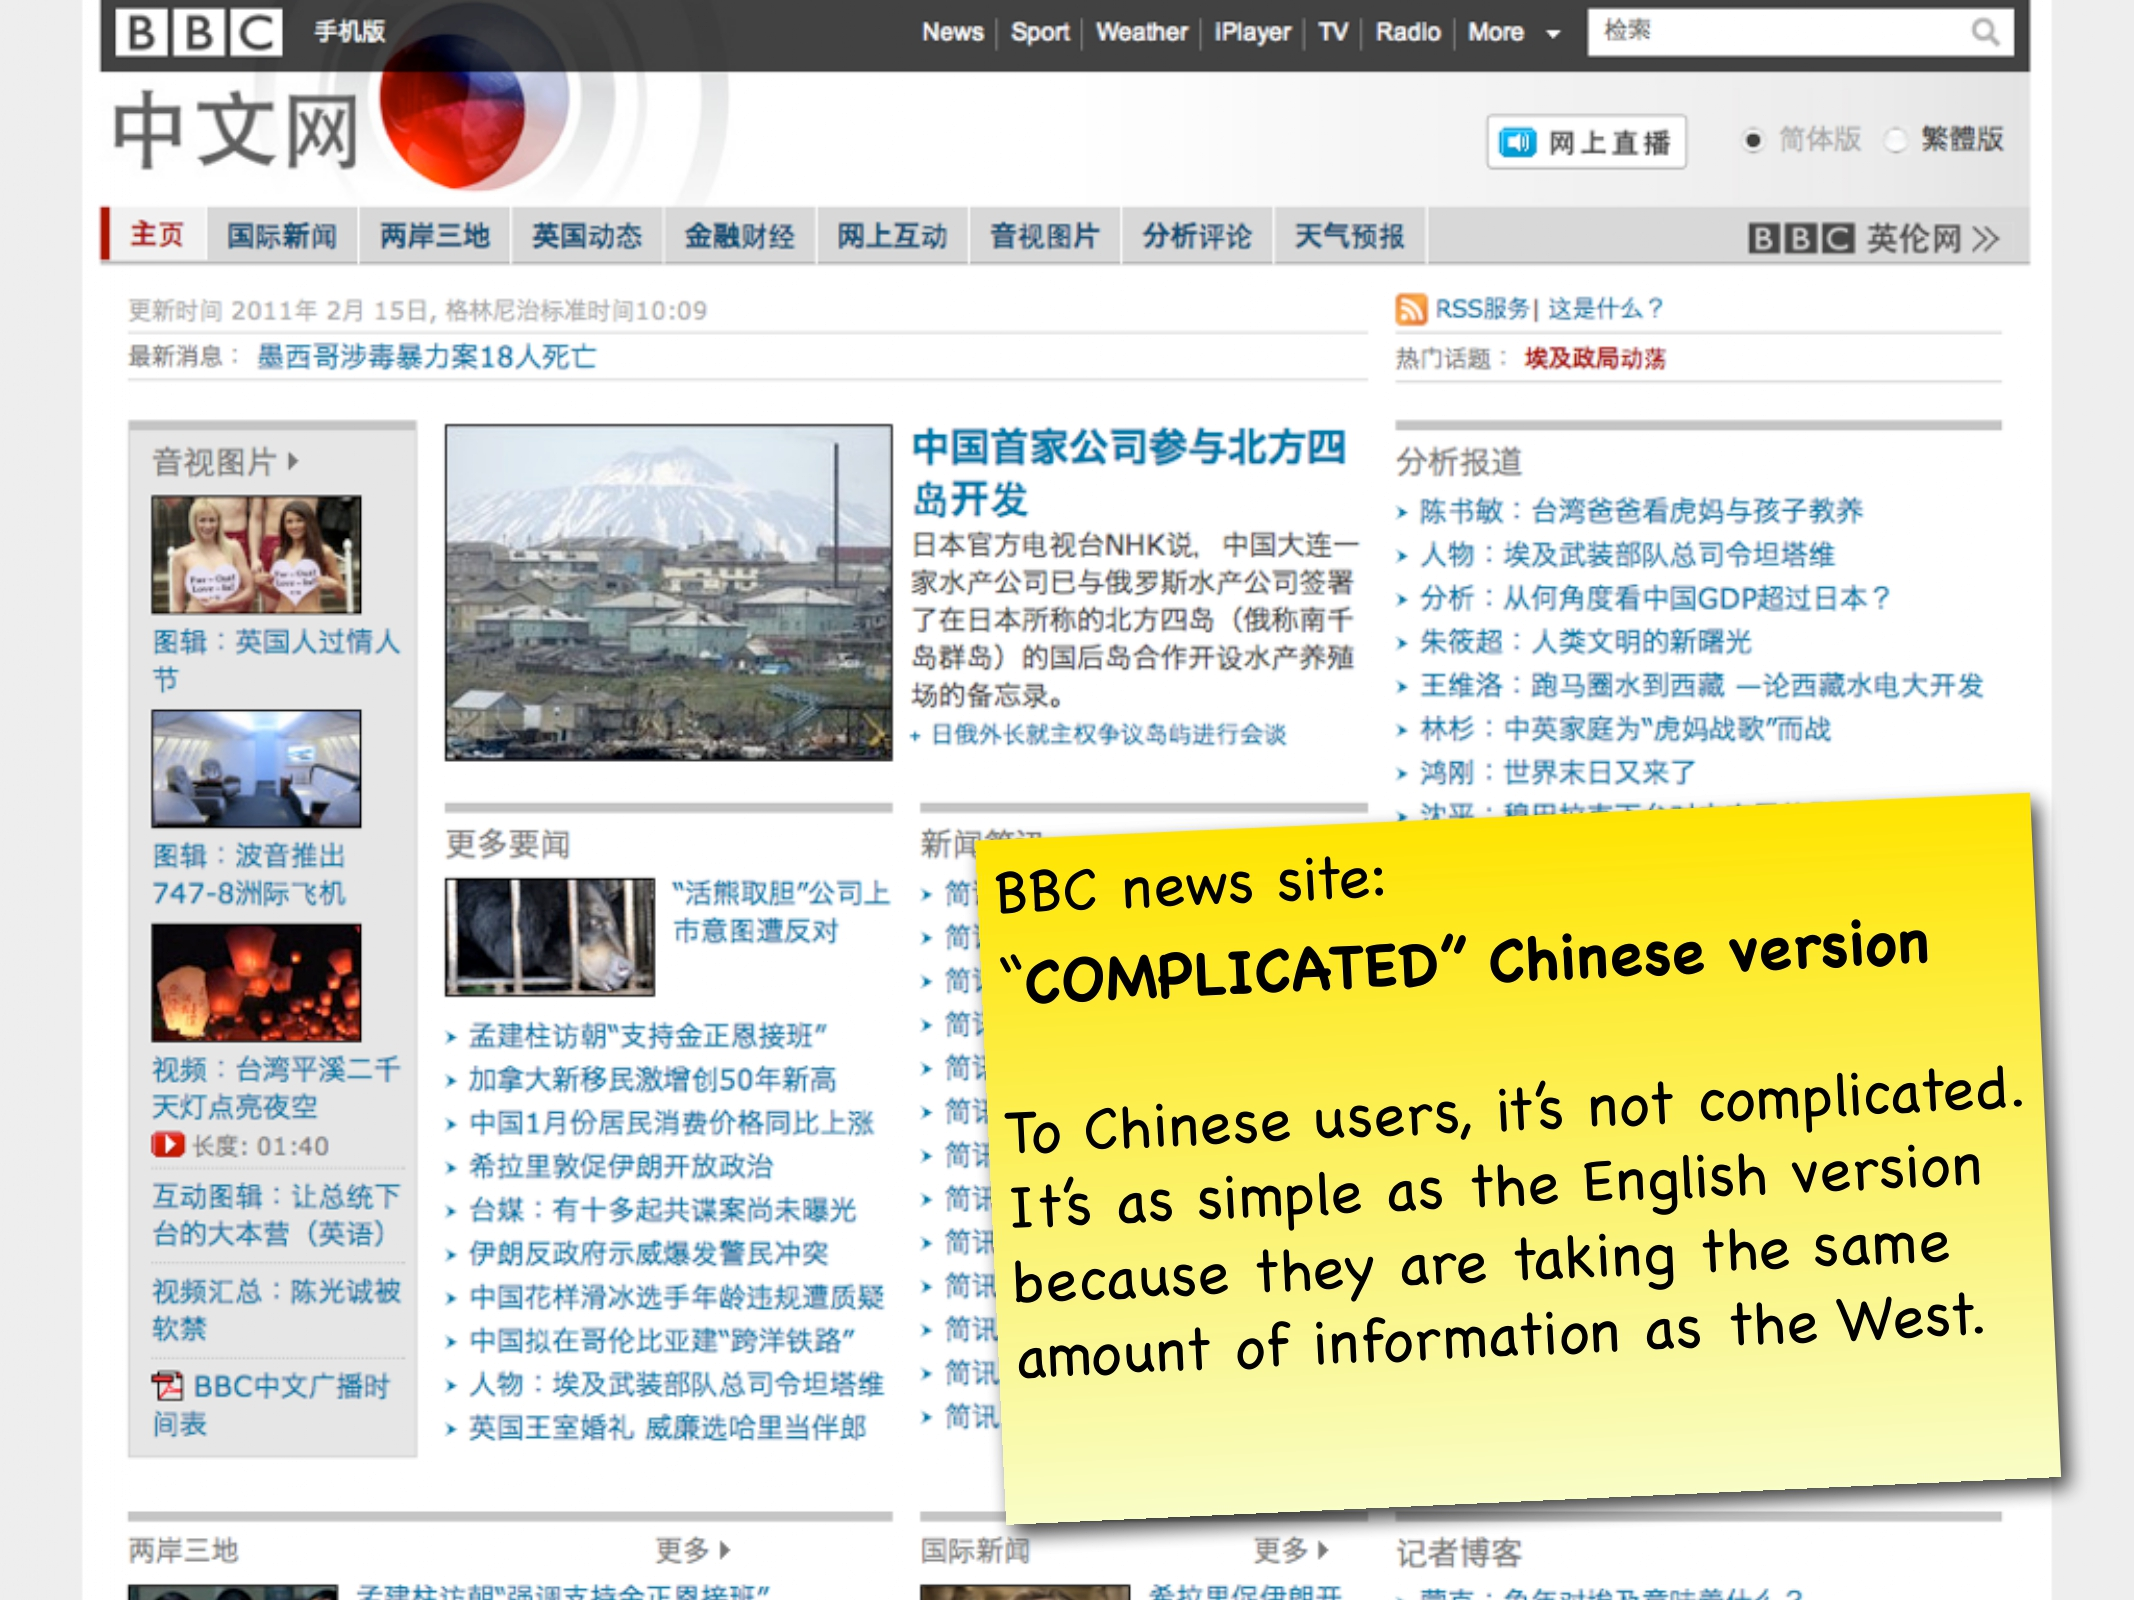 Chinese Web Design Patterns 2011_pages-to-jpg-0013.jpg